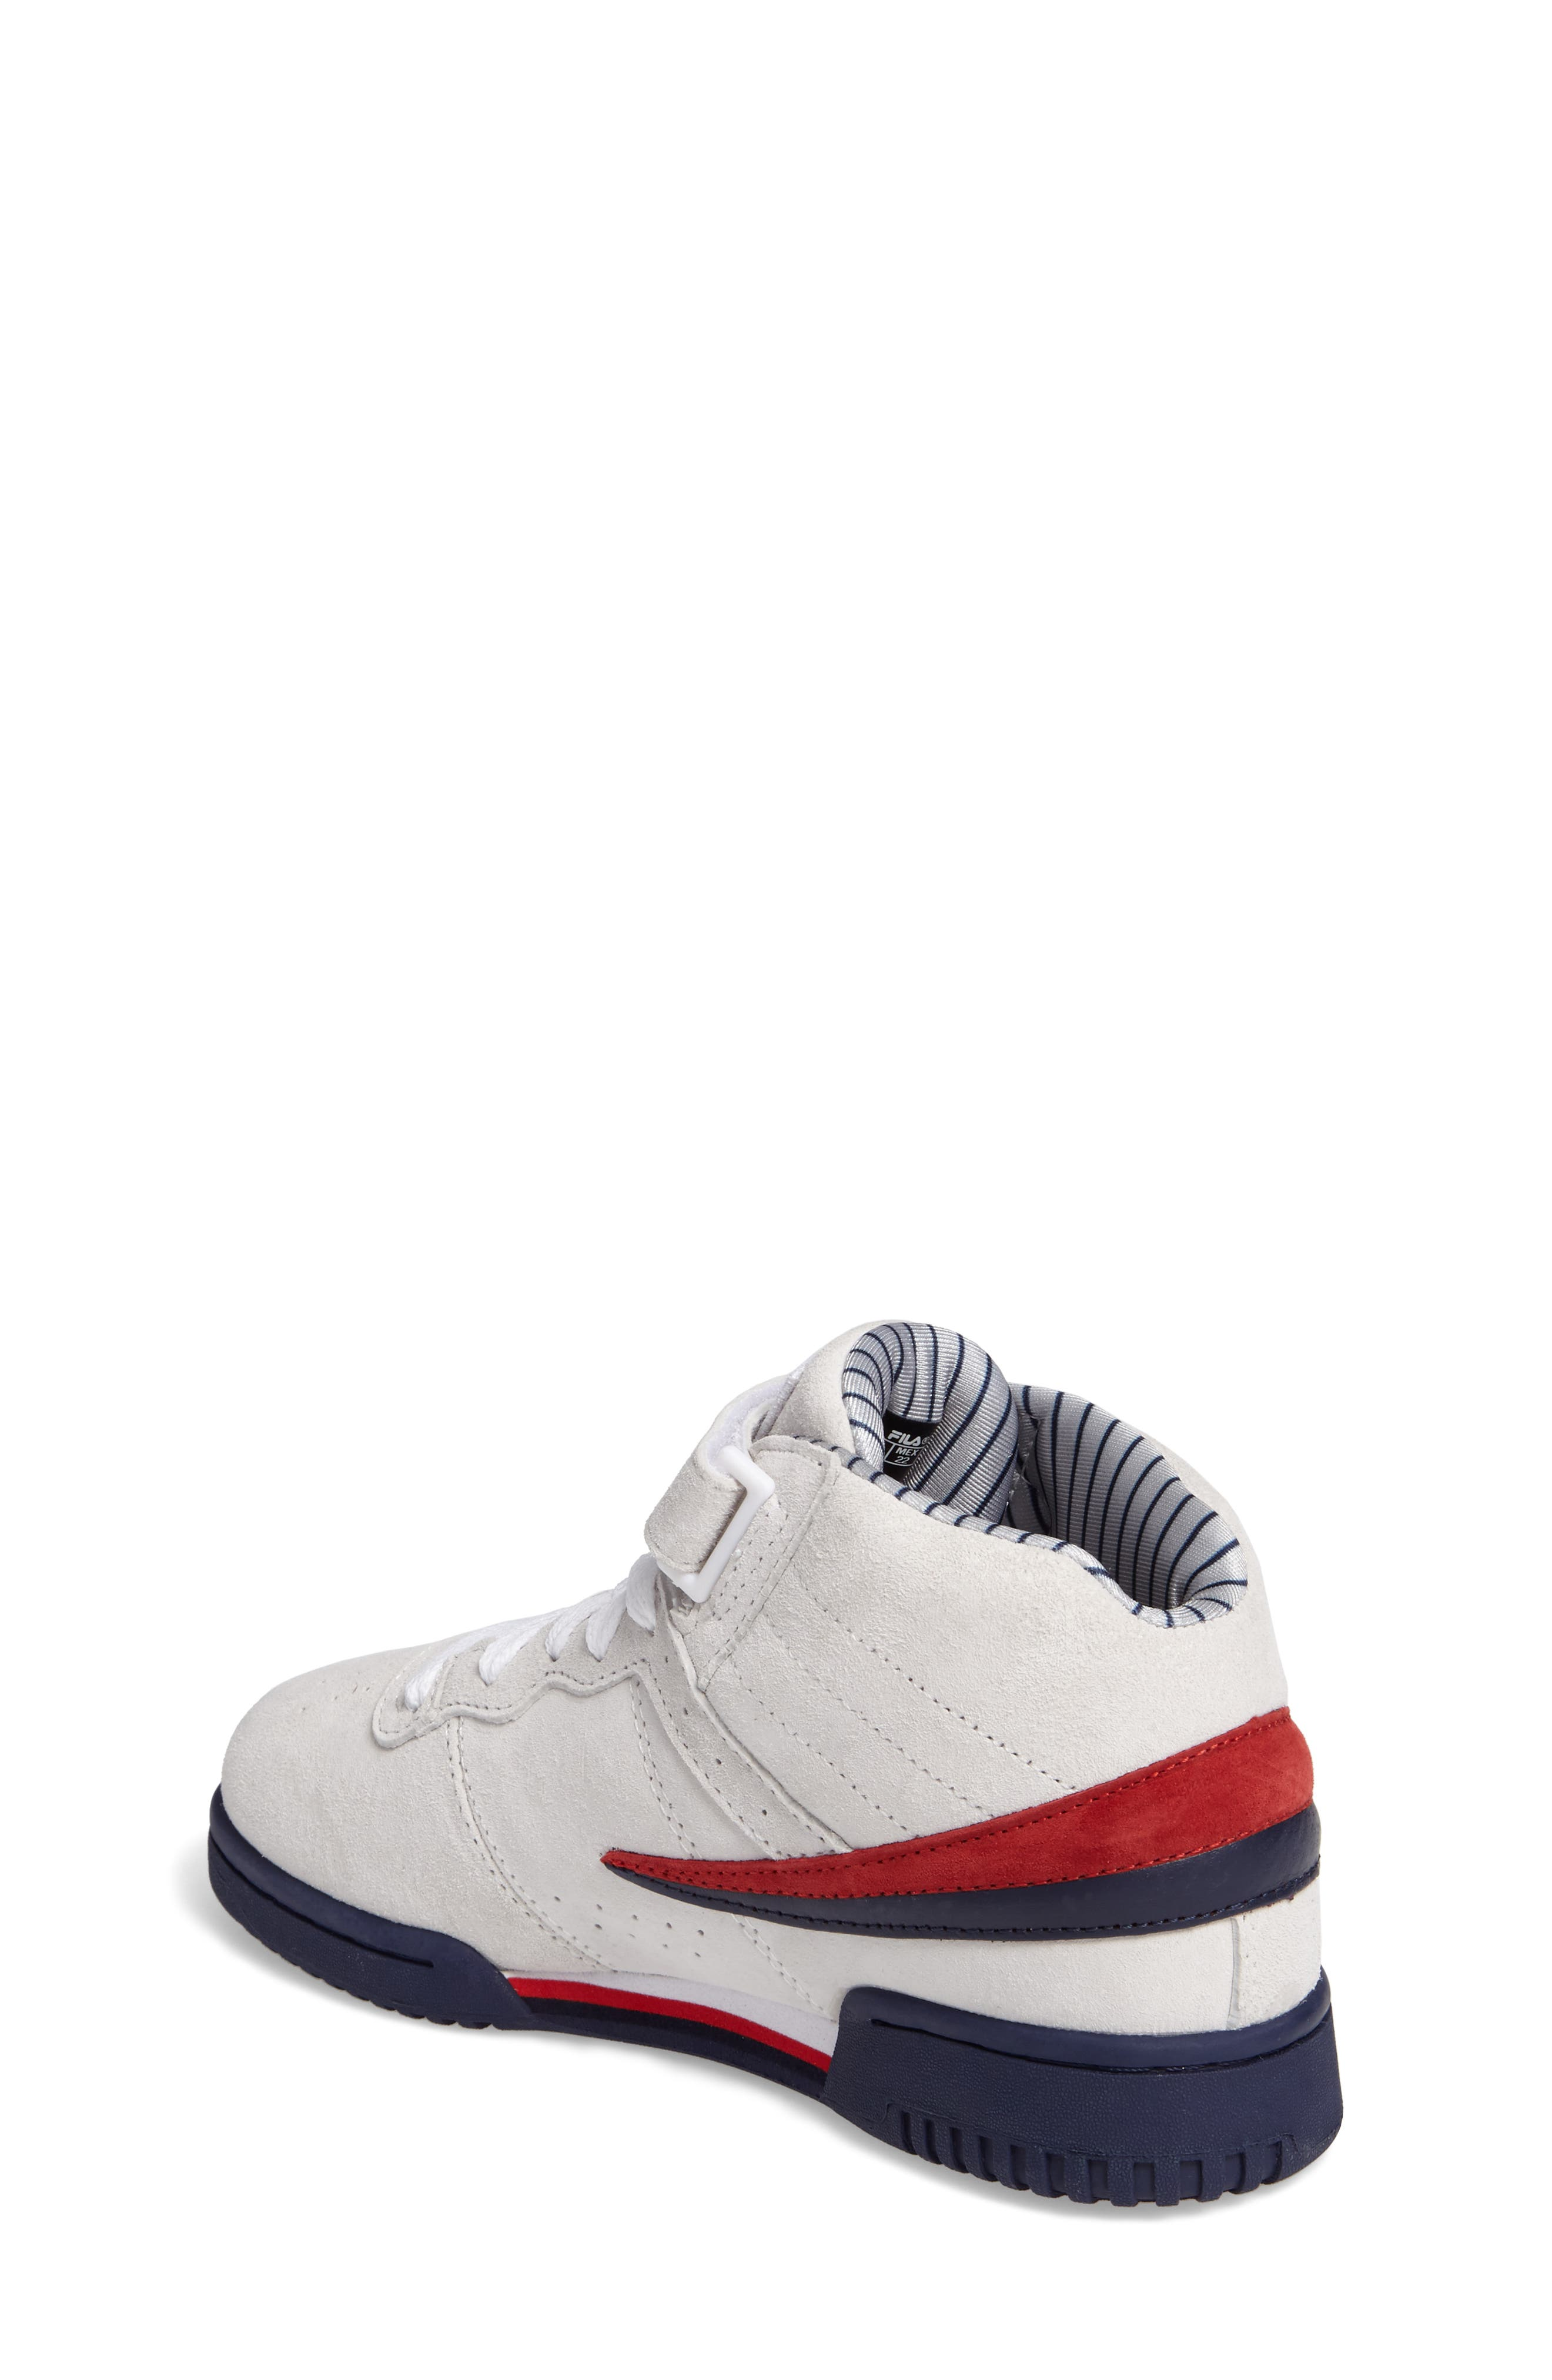 F-13 Mid Pinstripe Sneaker,                             Alternate thumbnail 2, color,                             150